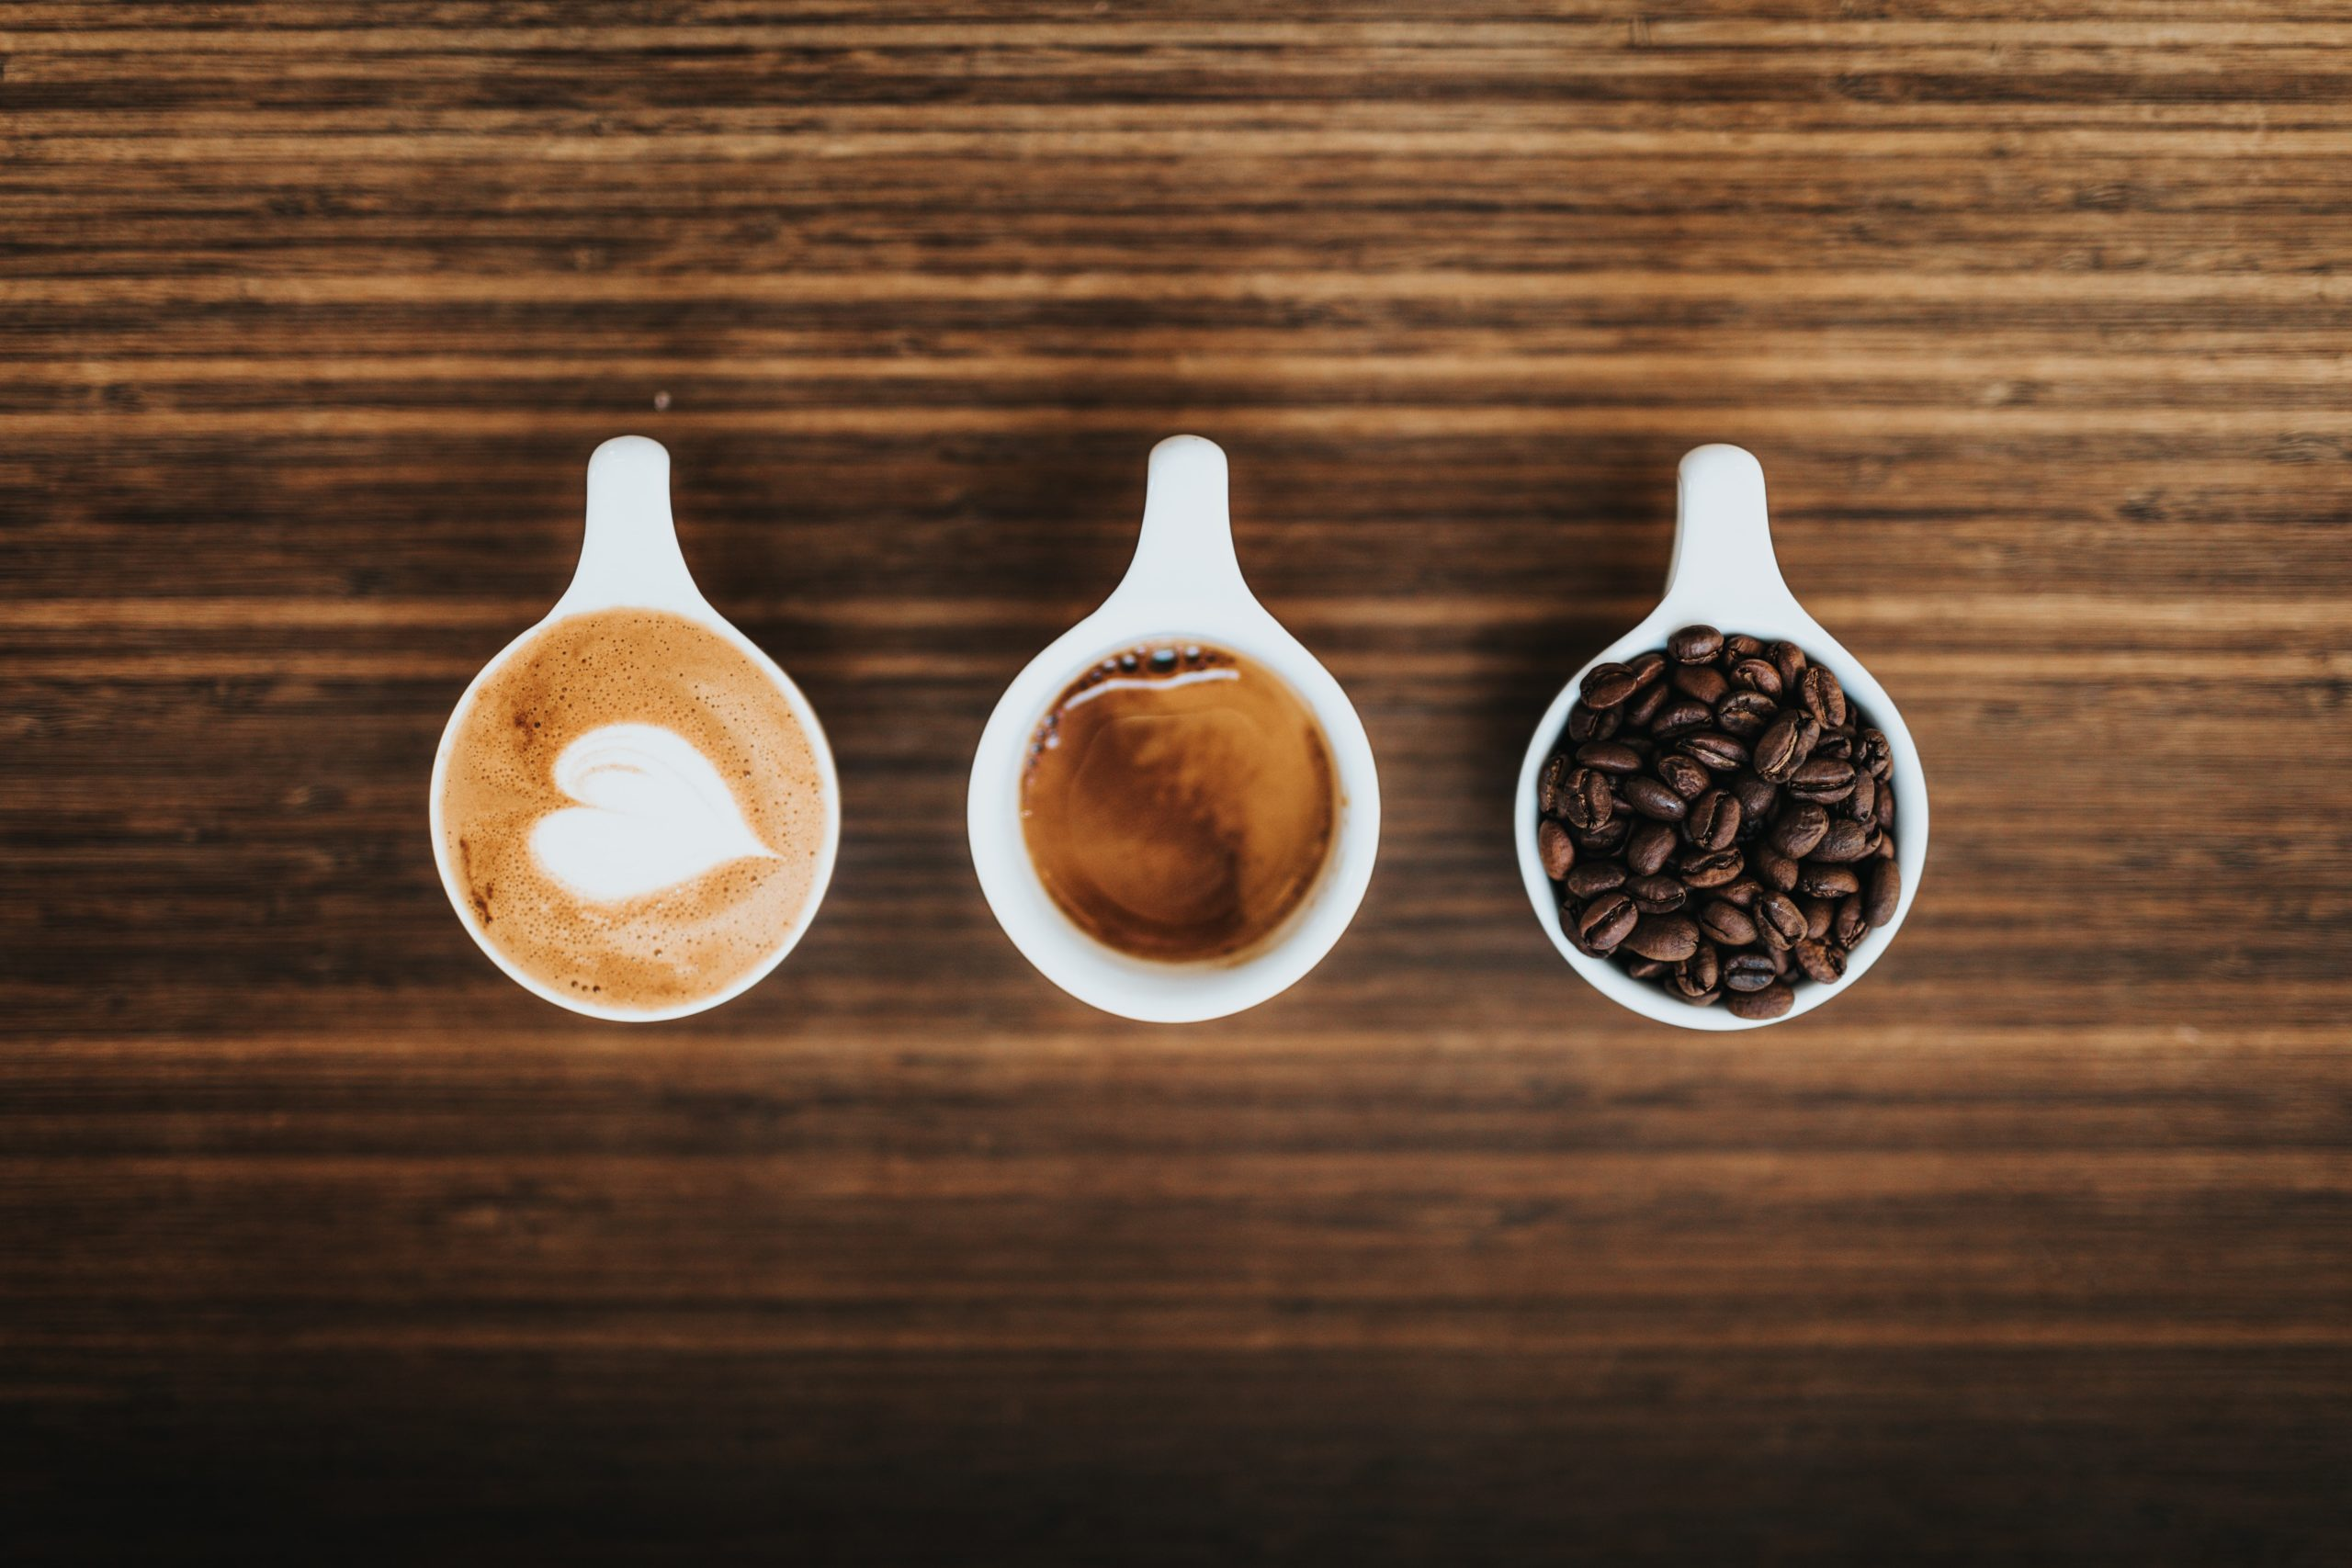 Re: 11 Reasons You Should Drink Coffee Every Day